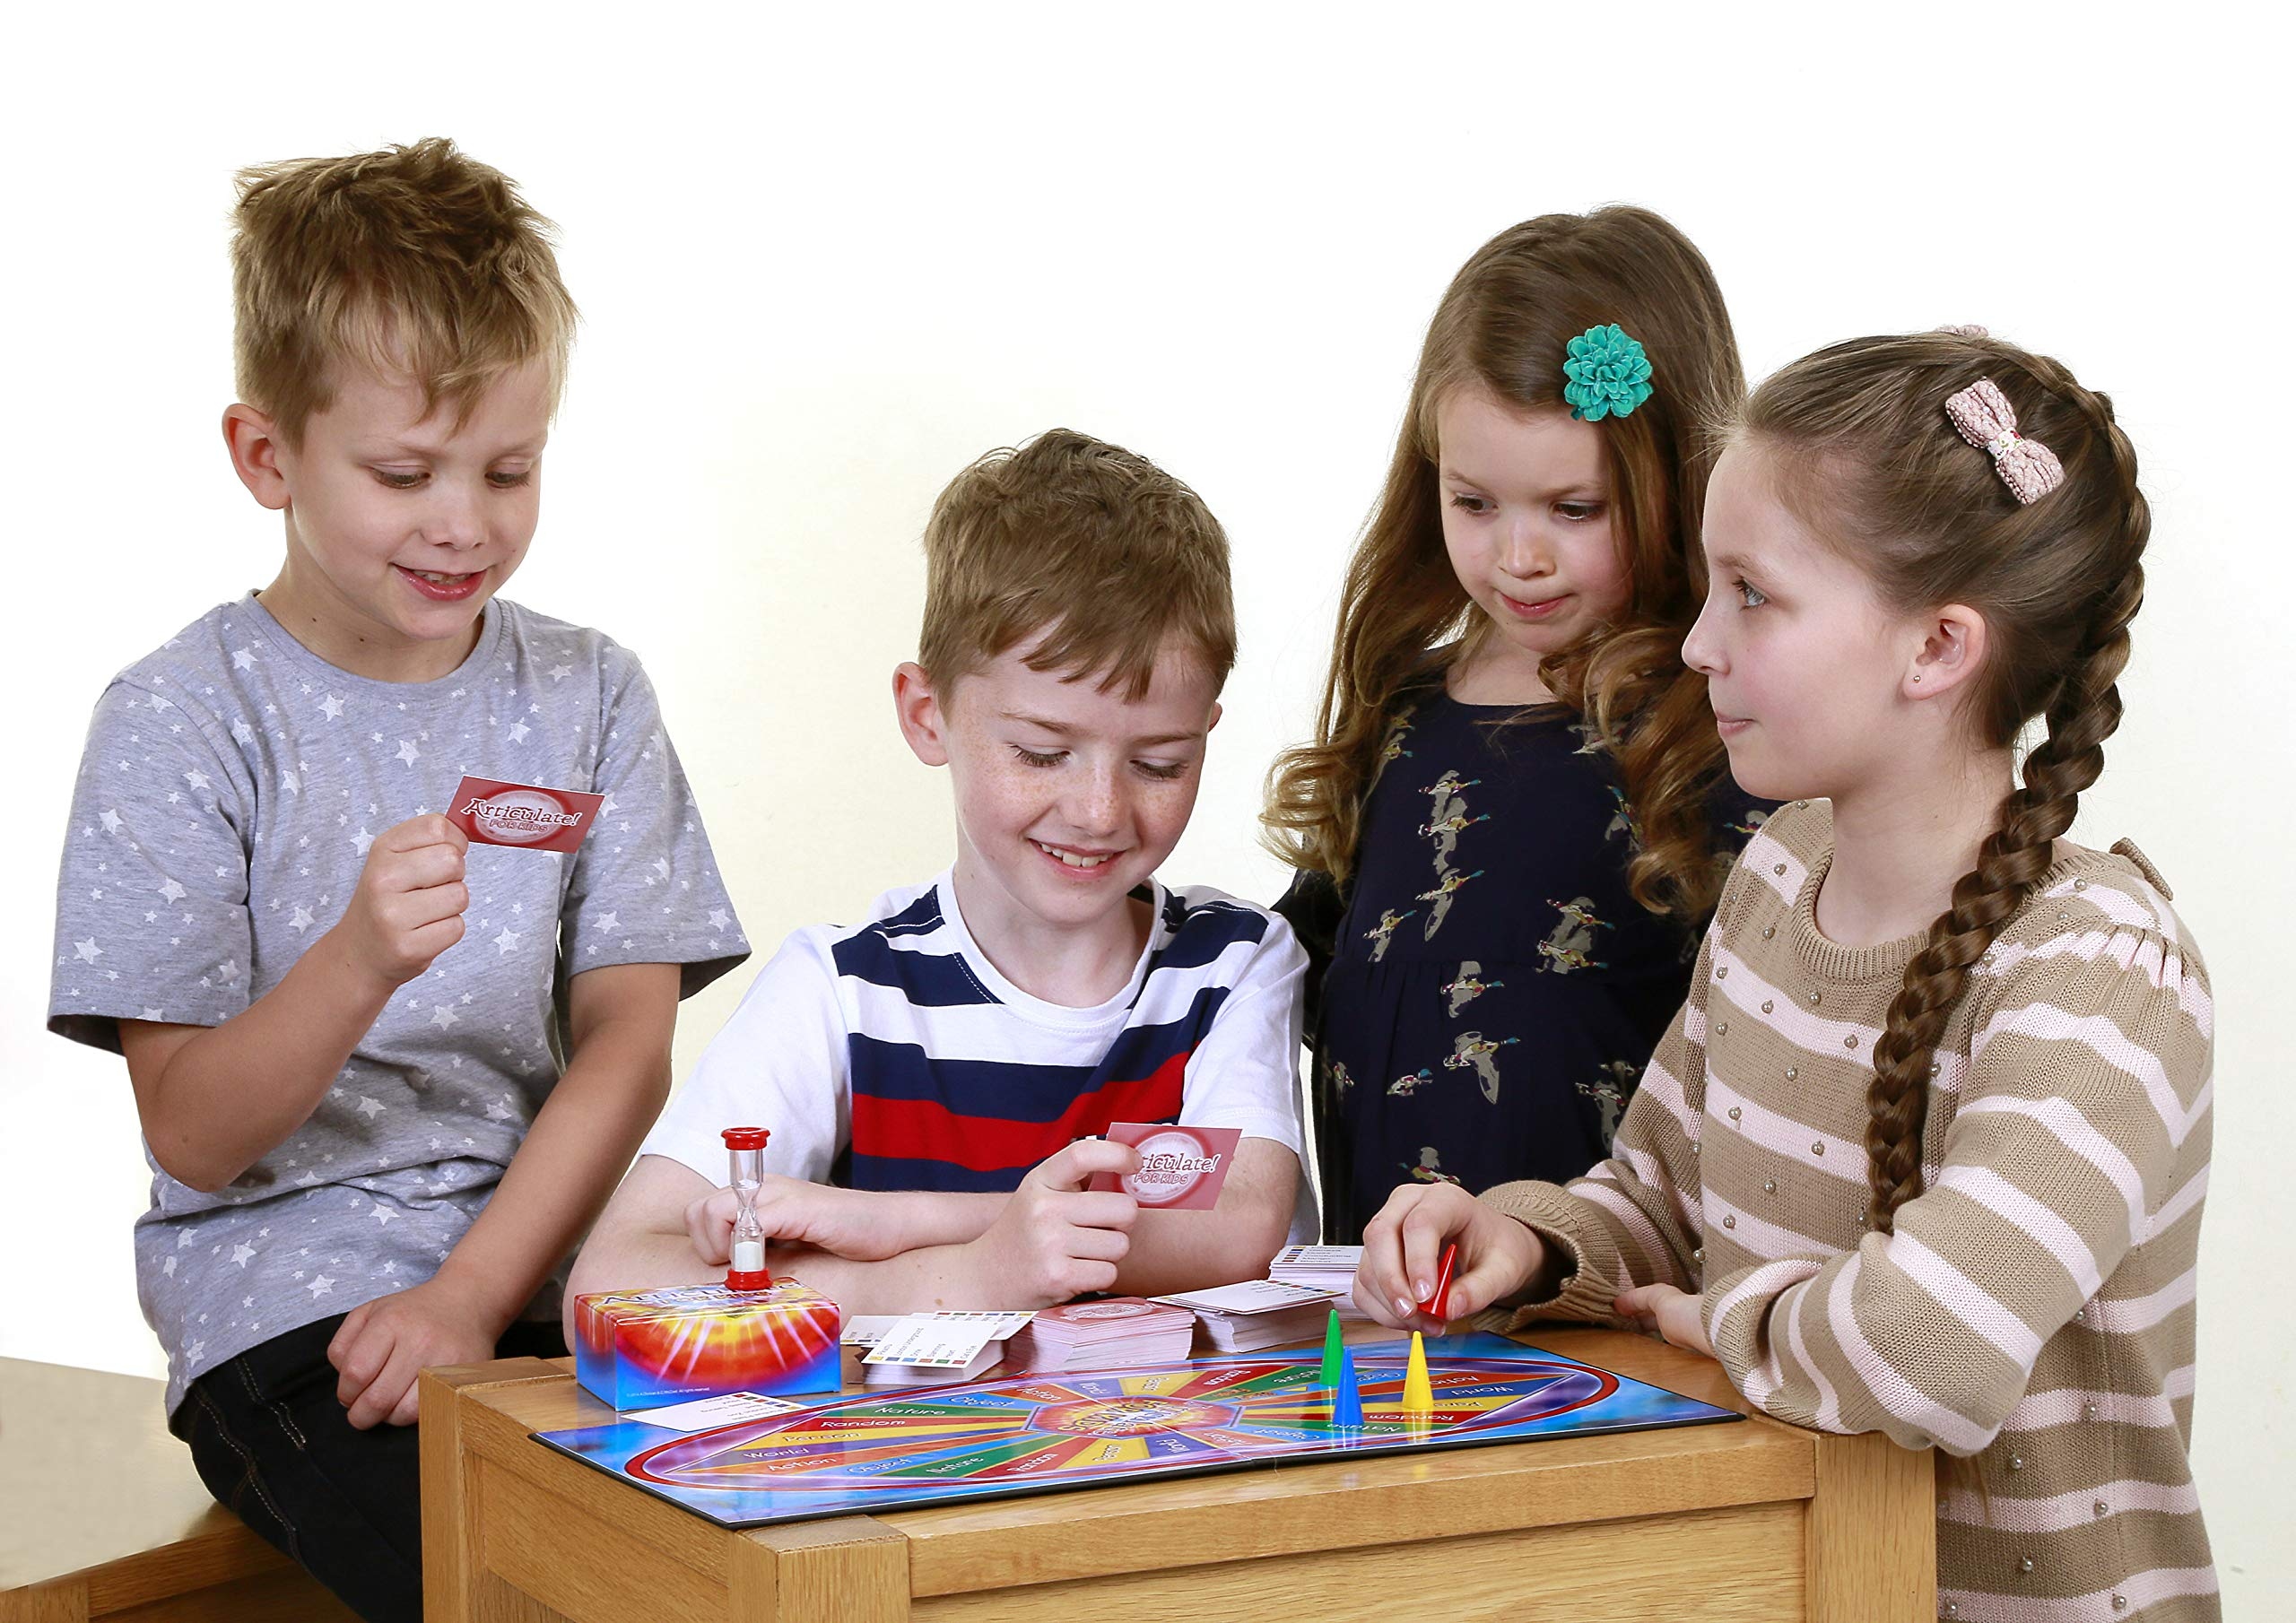 Drumond Park Articulate! for Kids - Family Kids Board Game | The Fast Talking Description Game|An Ideal Christmas Gift, Family Games for Adults and Children Suitable from 6+ Years